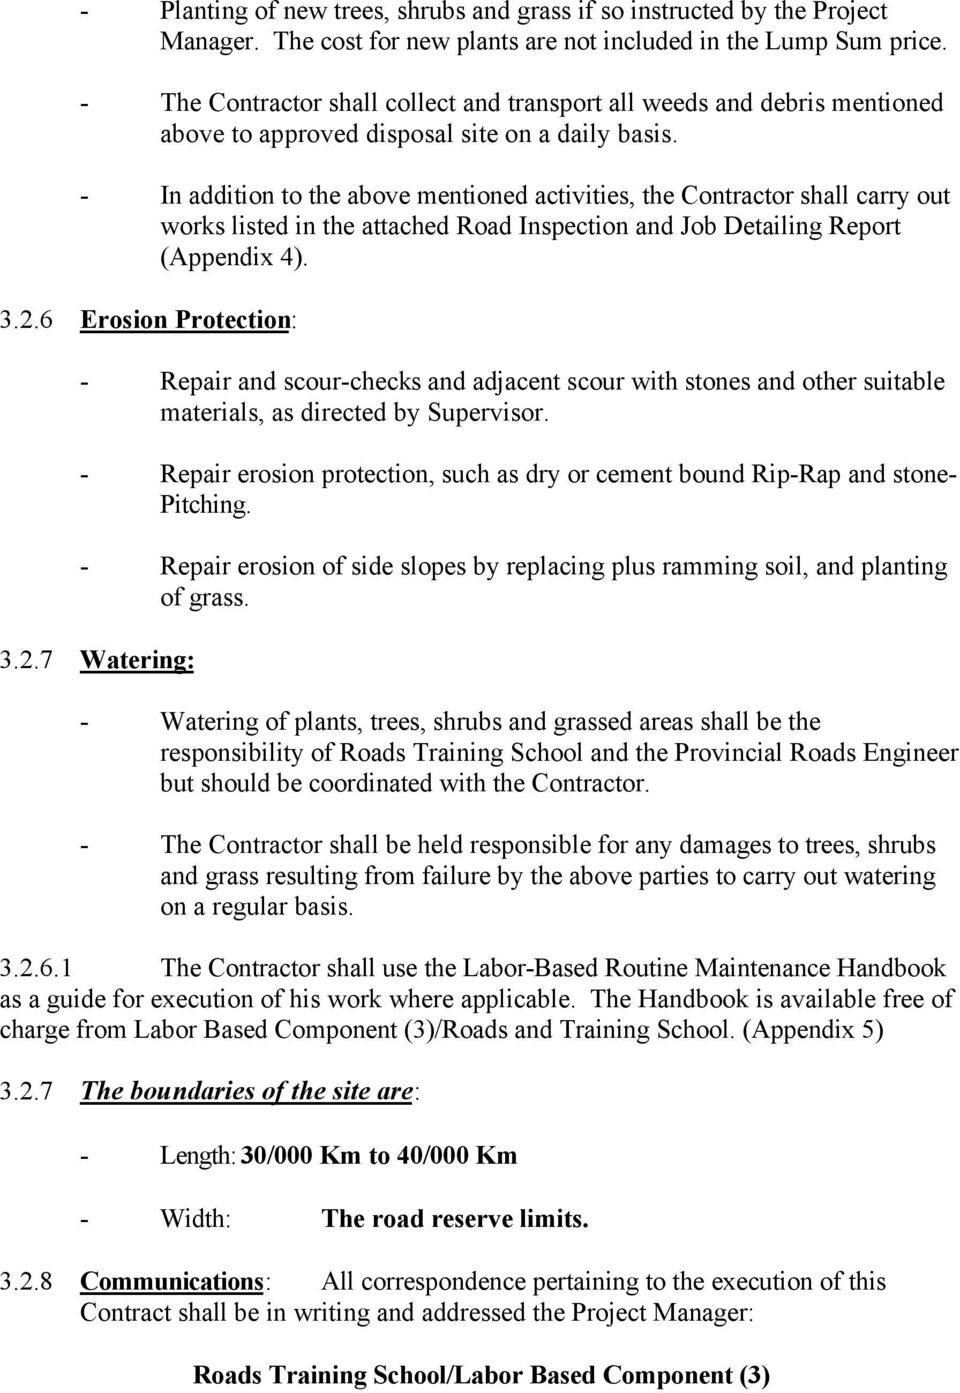 - In addition to the above mentioned activities, the Contractor shall carry out works listed in the attached Road Inspection and Job Detailing Report (Appendix 4). 3.2.